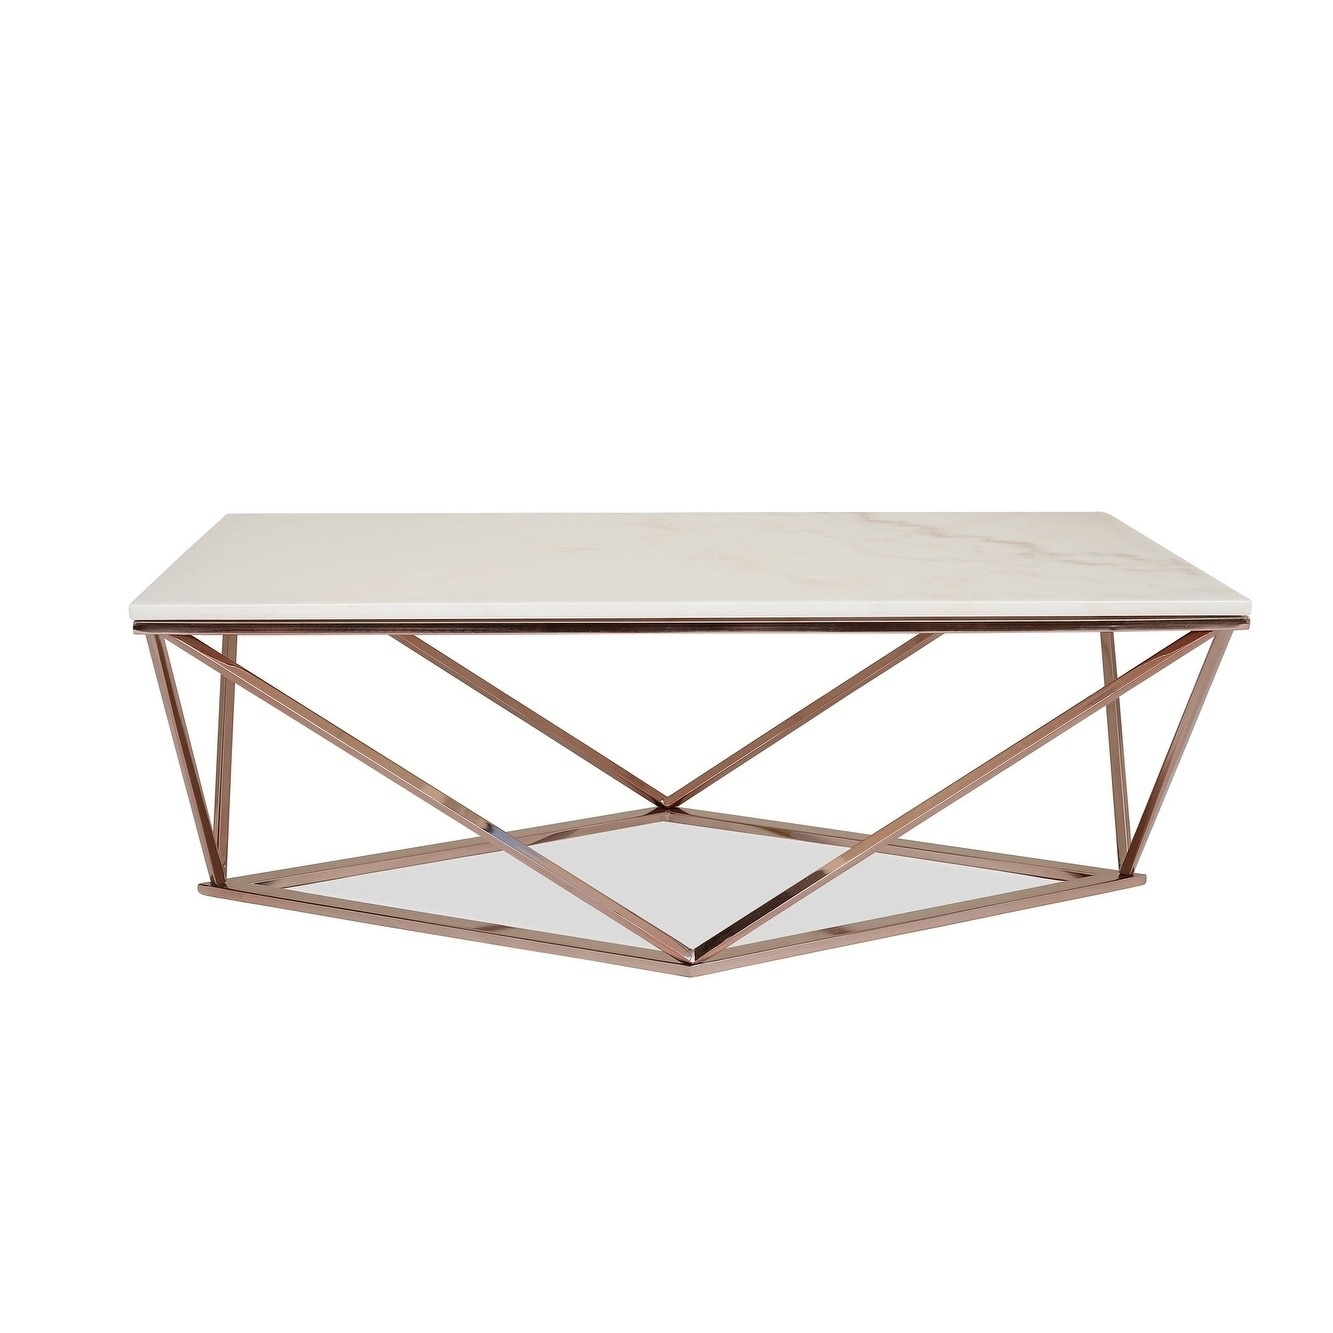 Whitney White Marble Coffee Table Modern Gold Tables For Living Room Rose Free Shipping Today 21485041